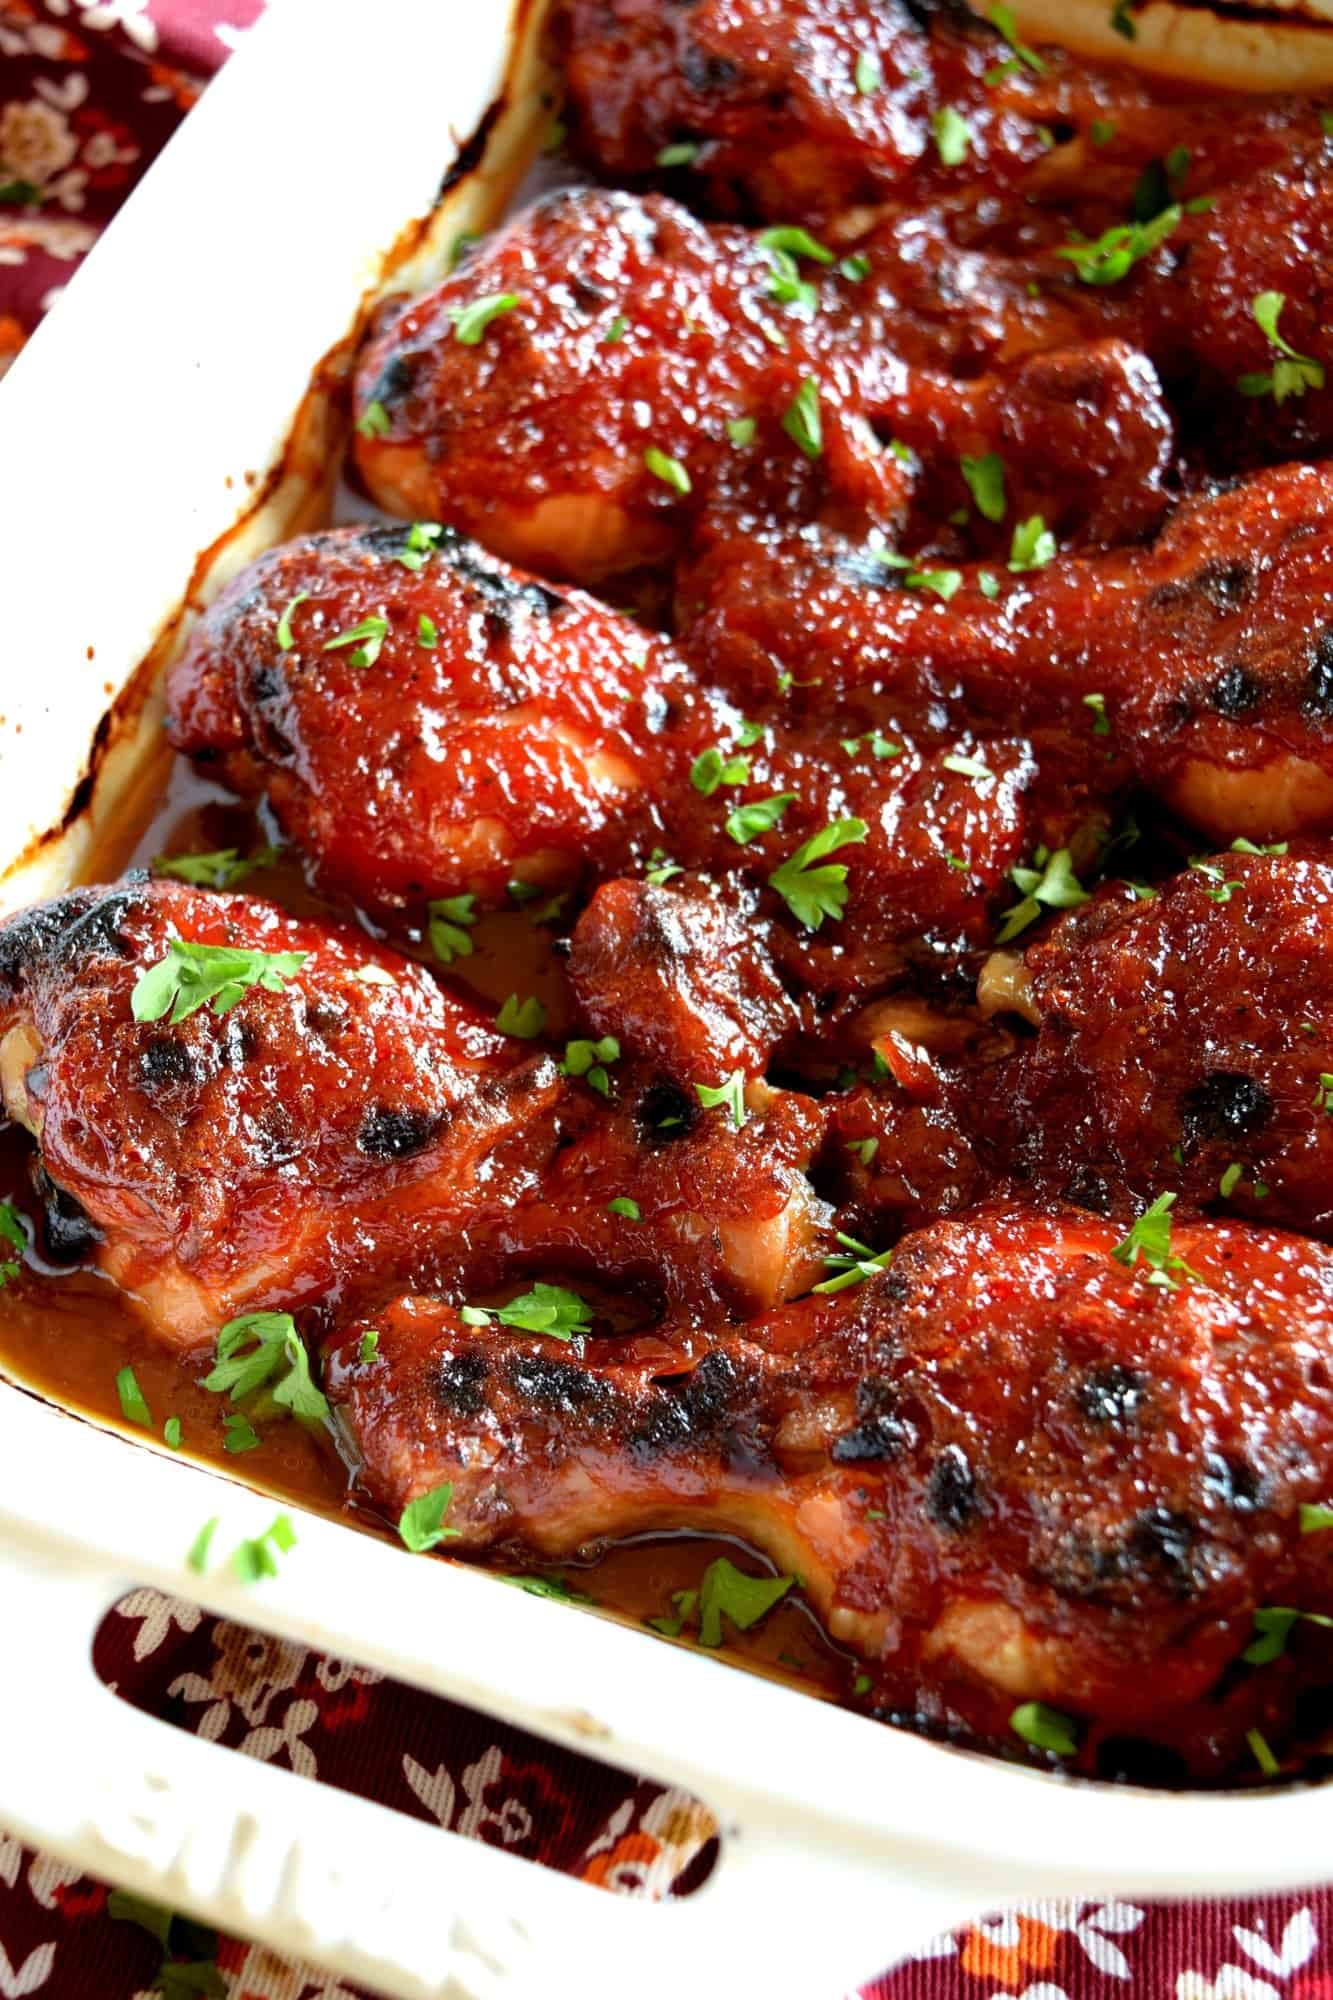 Charred Chipotle Chicken